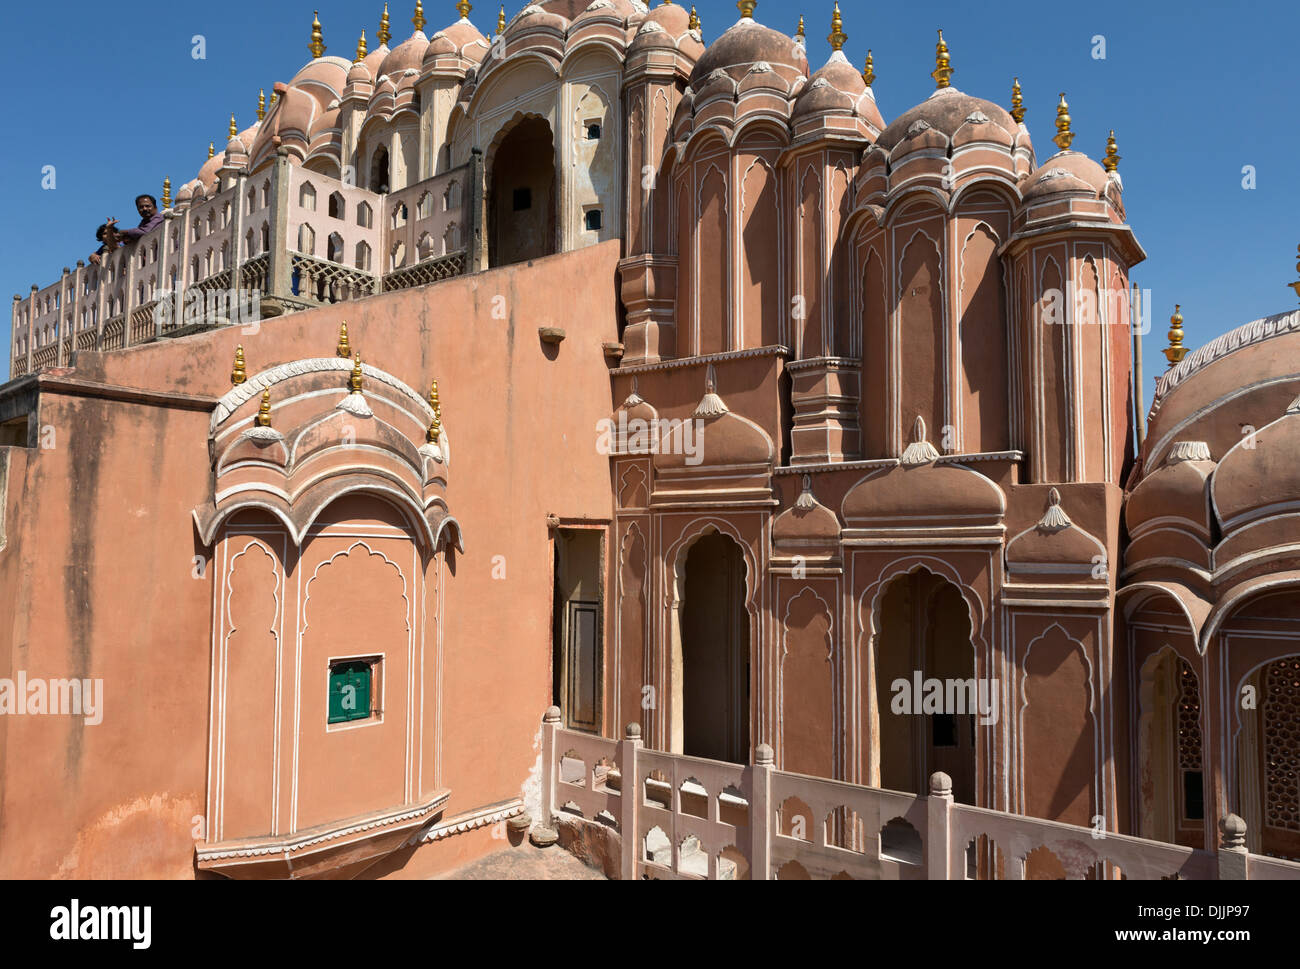 City Palace. In one part of the Chandra Mahal palace now is a museum but most of the castle is still a royal residence. - Stock Image